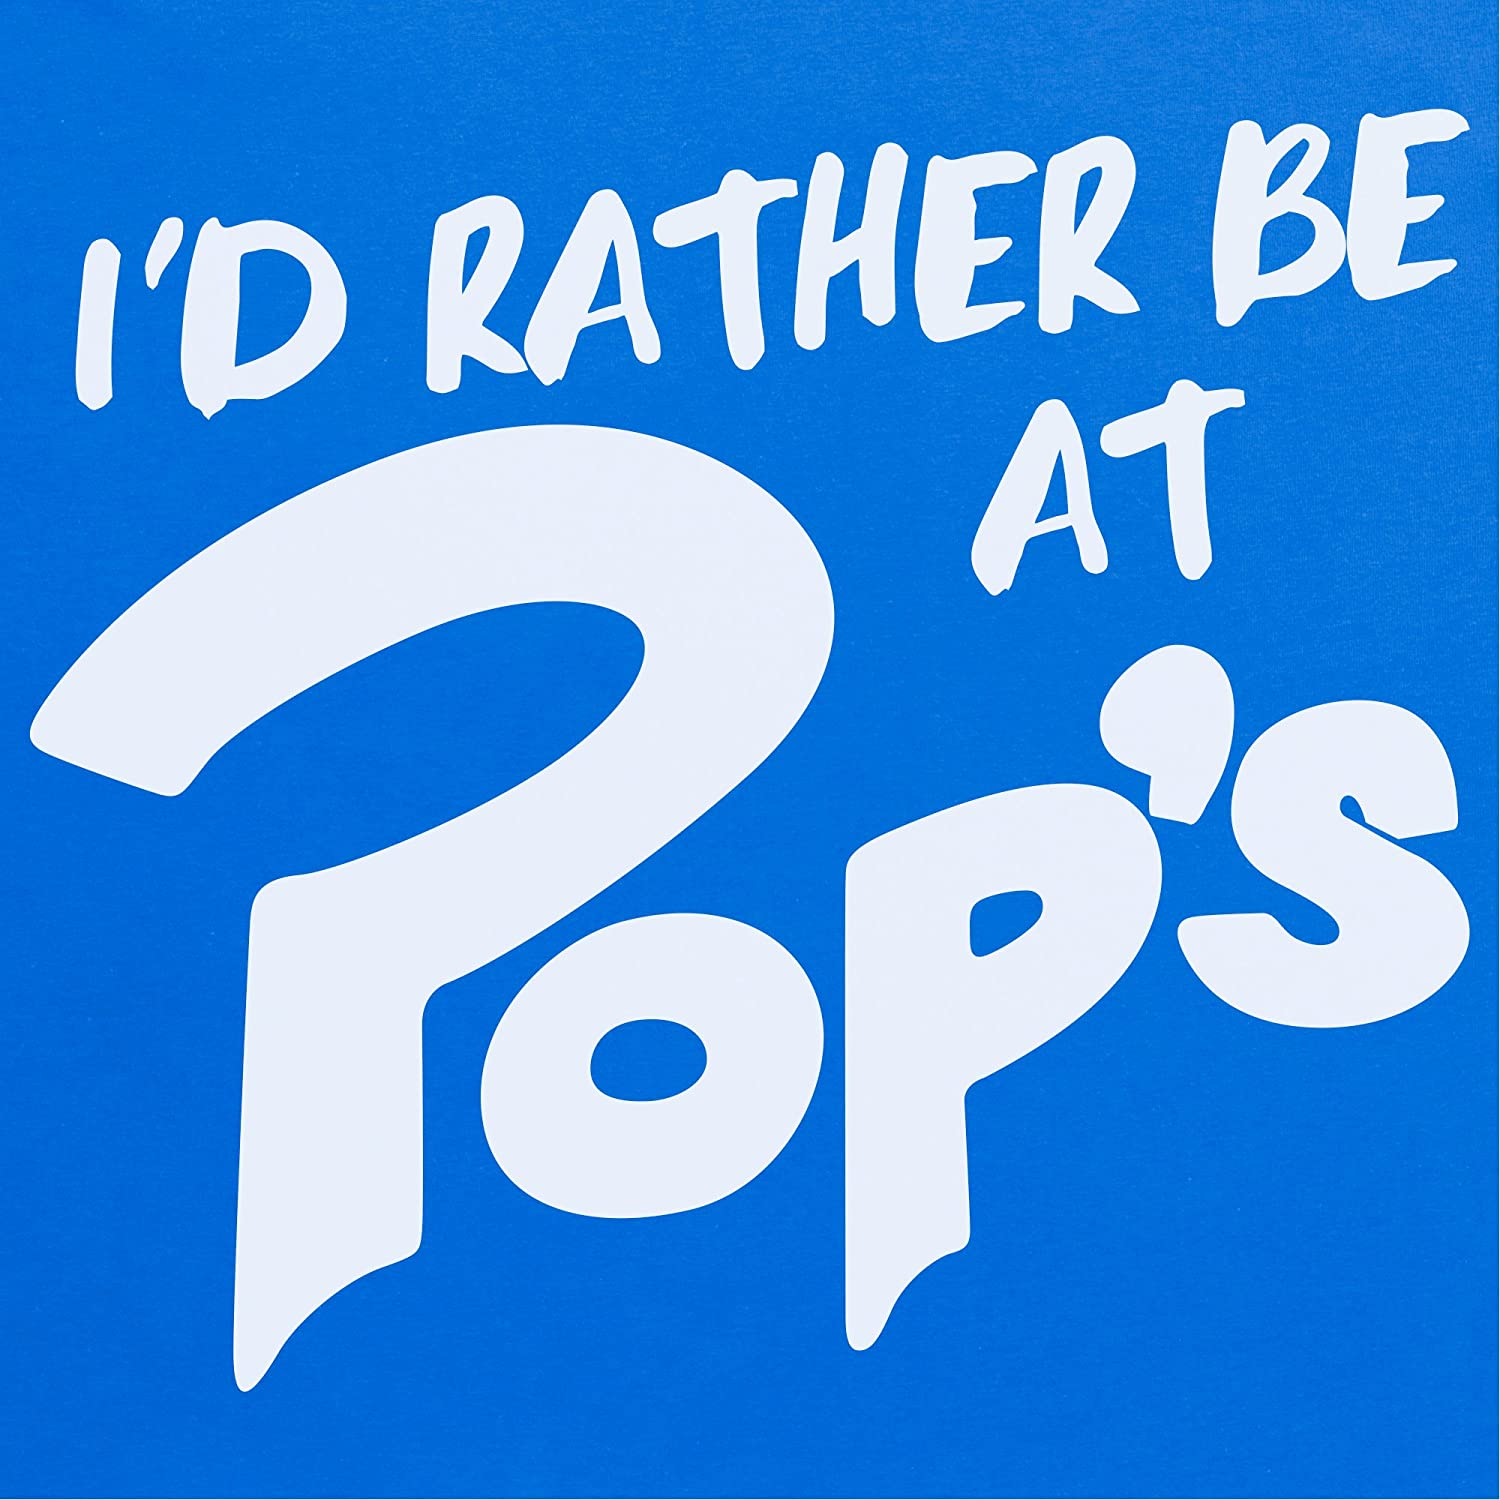 Inspired by Riverdale - Rather Be At PopS Camiseta infantil, Para Nios: Amazon.es: Ropa y accesorios